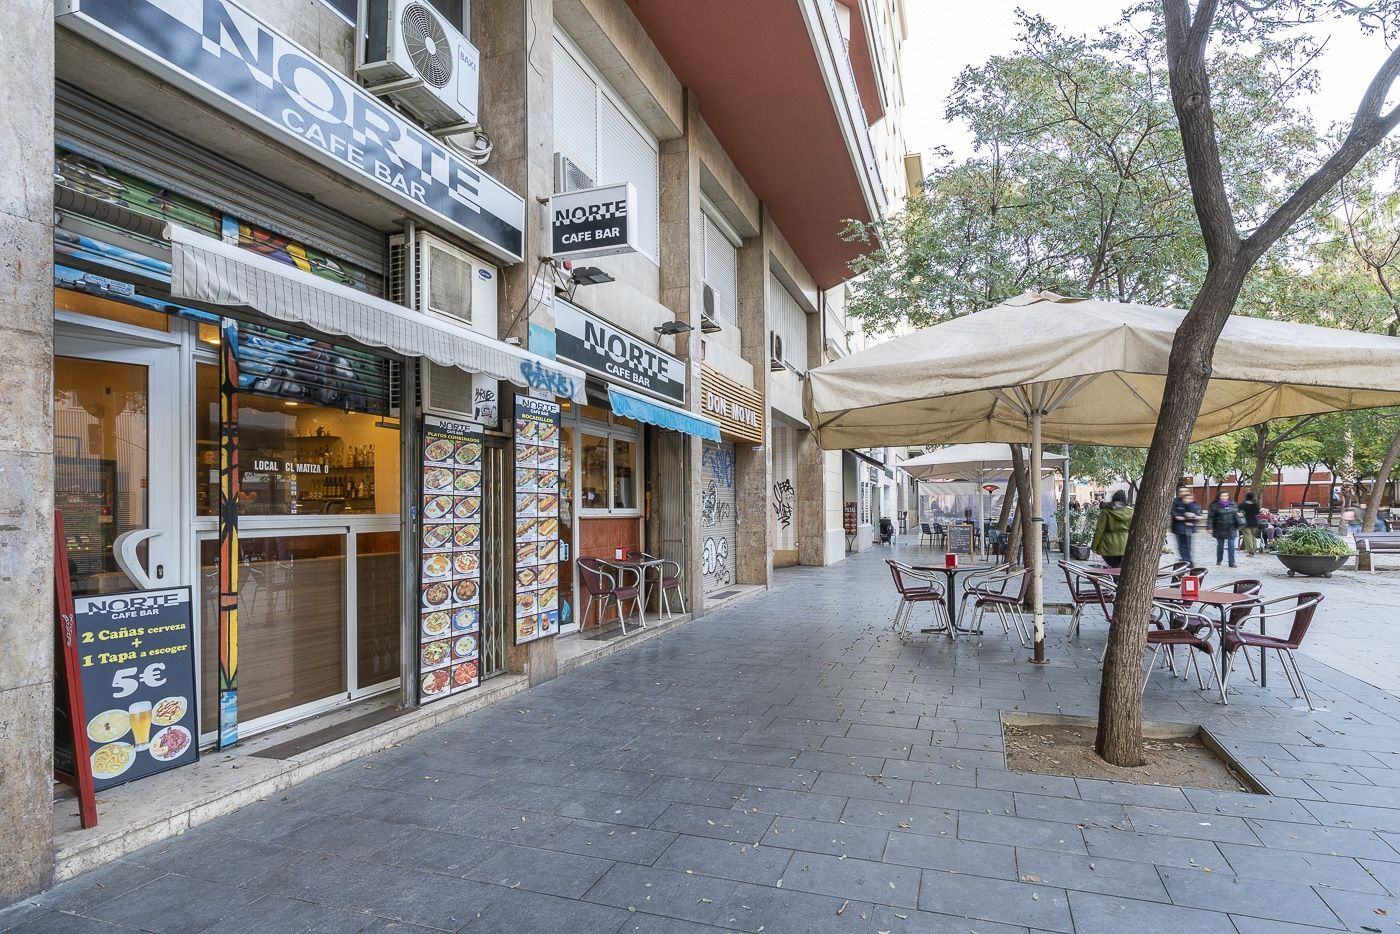 Trapasso Locale commerciale  Carrer ribes